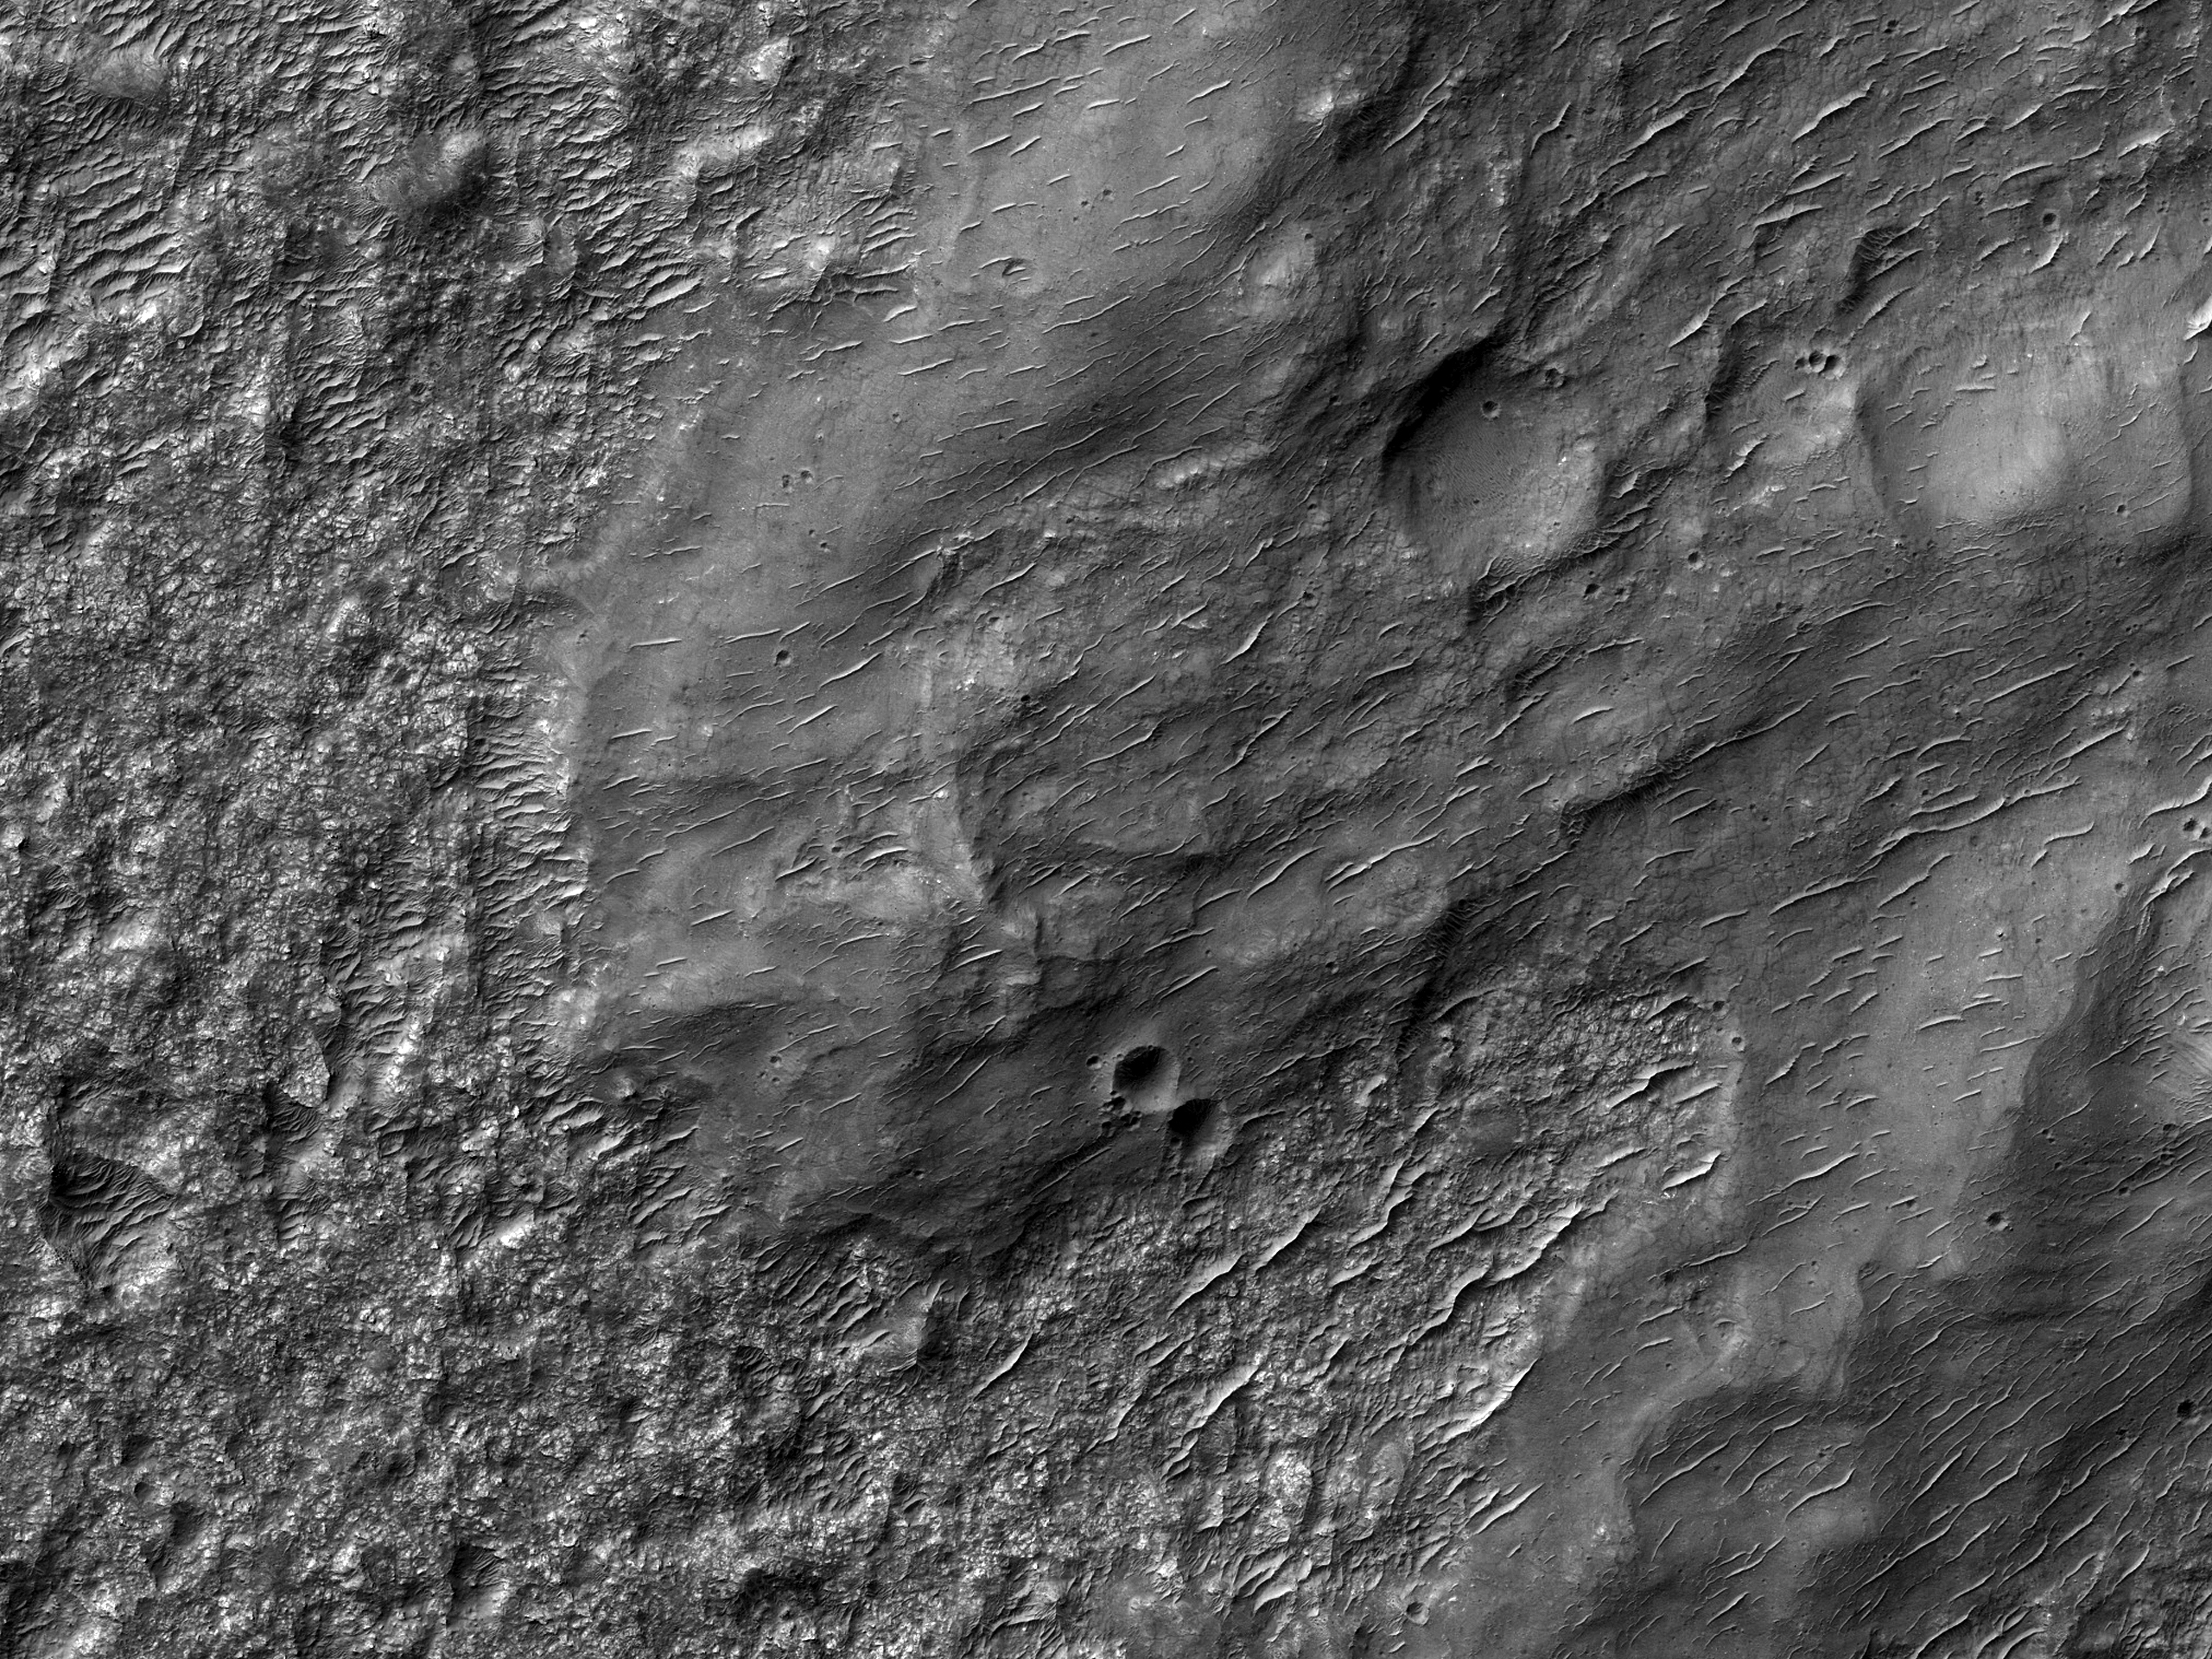 Ejecta on the Plains